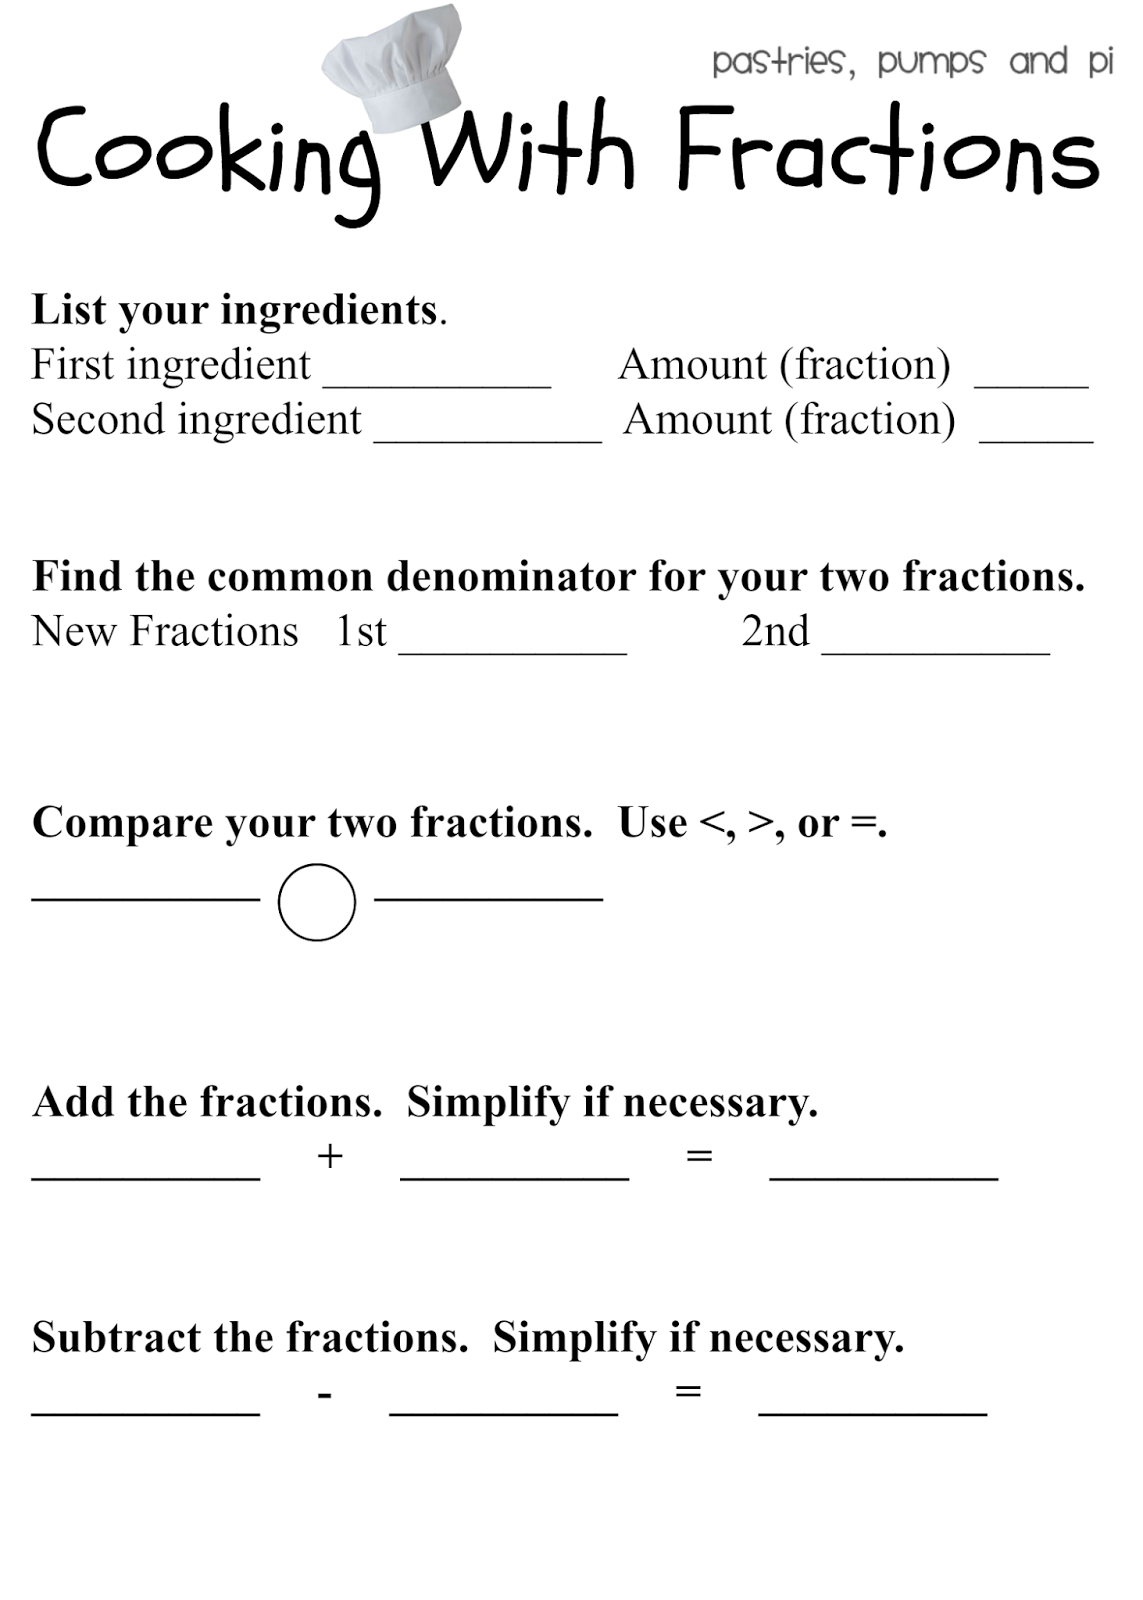 Cooking With Fractions Free Printable